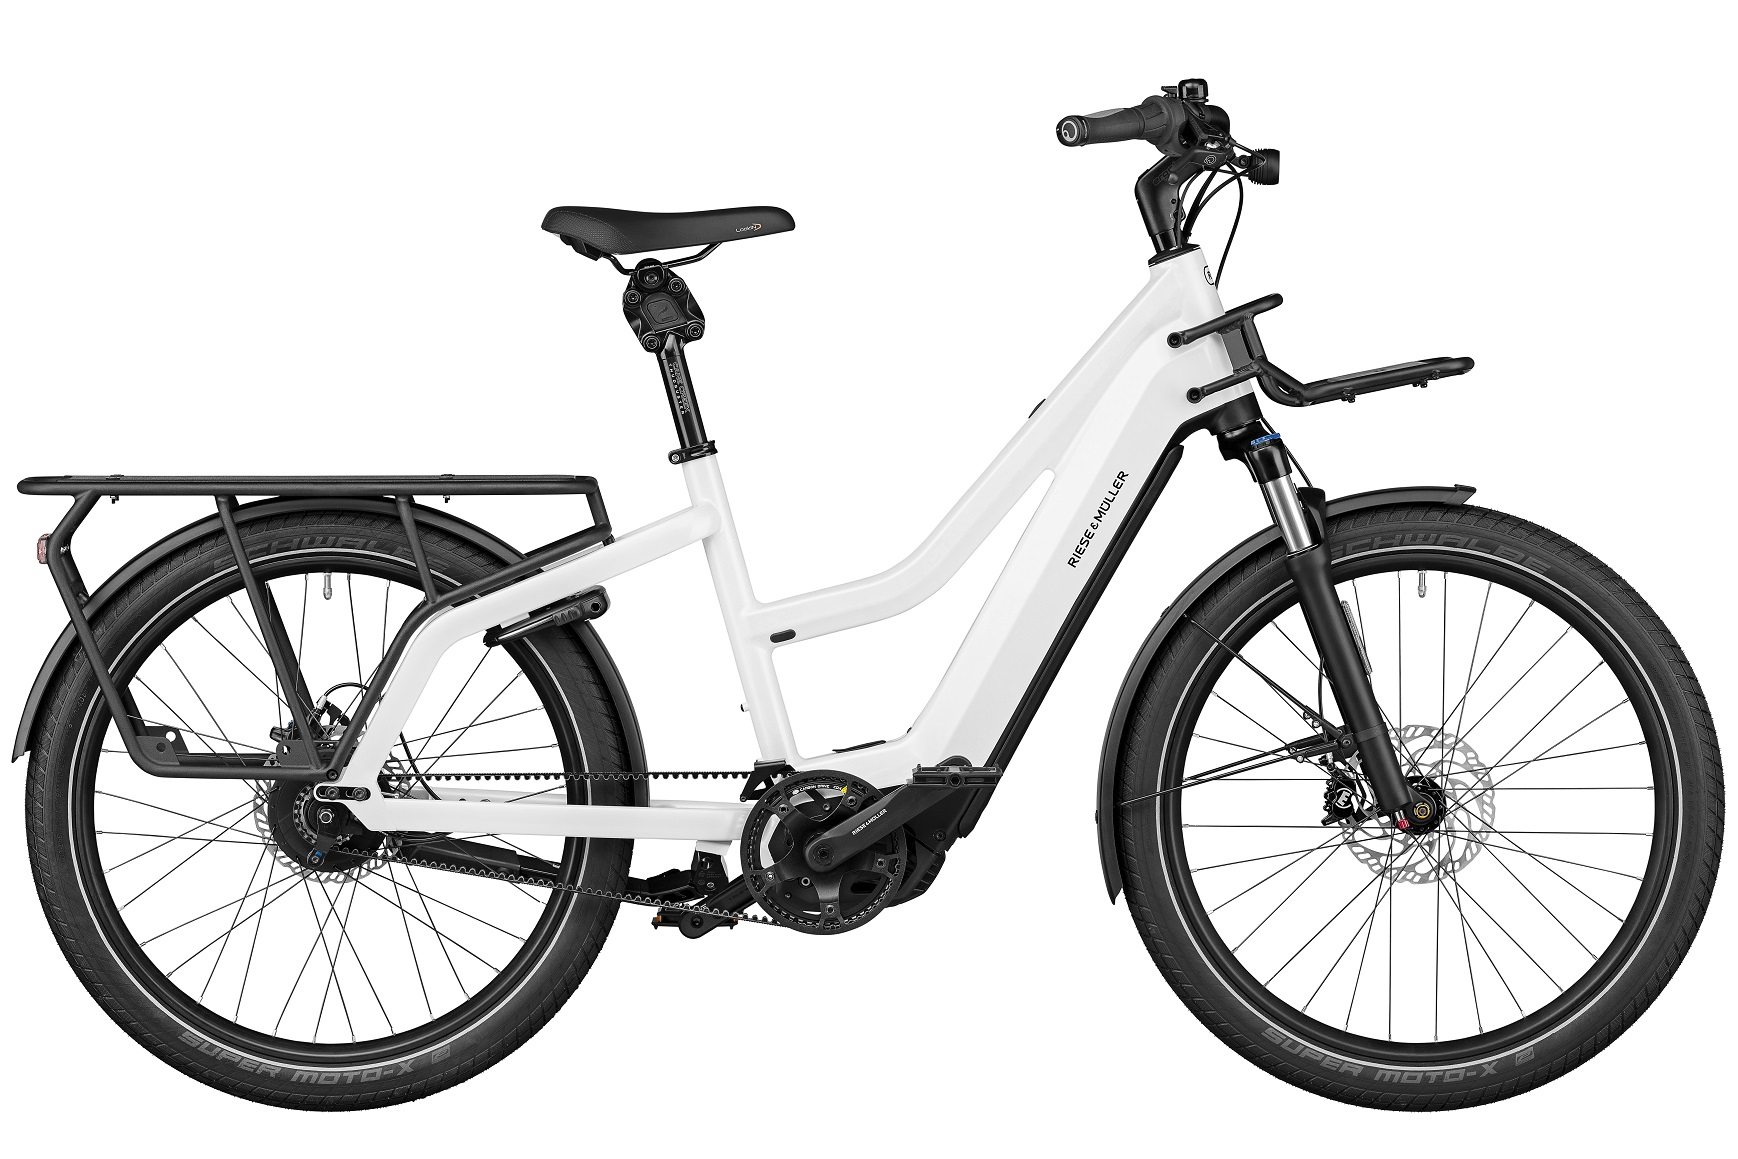 Riese&Müller R&M Mcharger GT vario RX mixte